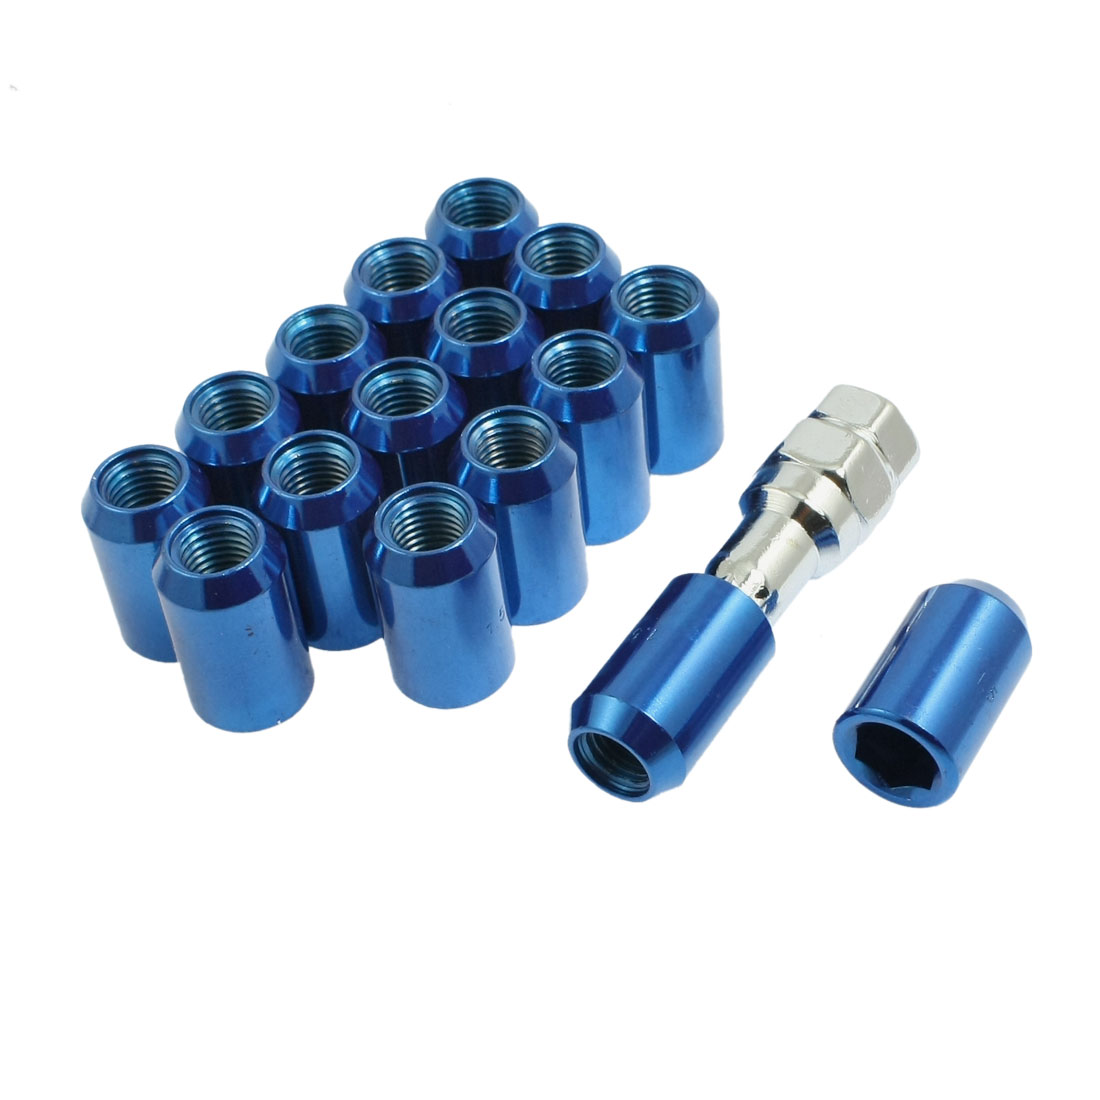 M12x1.5 Blue Metal Hex Locking Lug Nuts 16 Pcs for Wheel